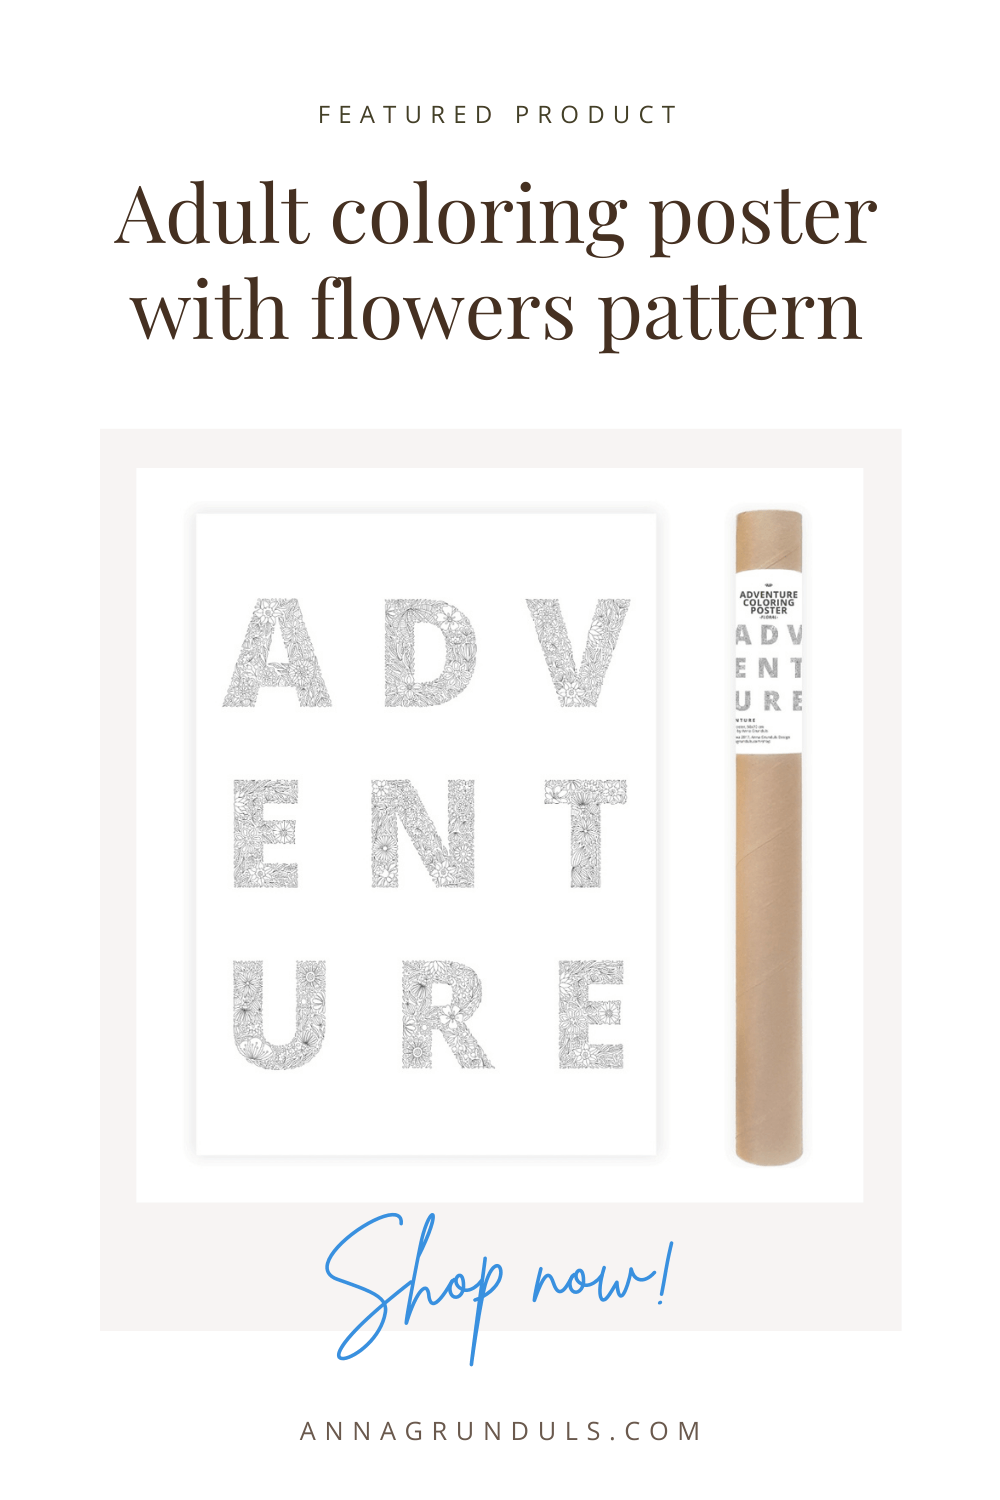 adventure poster for adult coloring pinterest pin